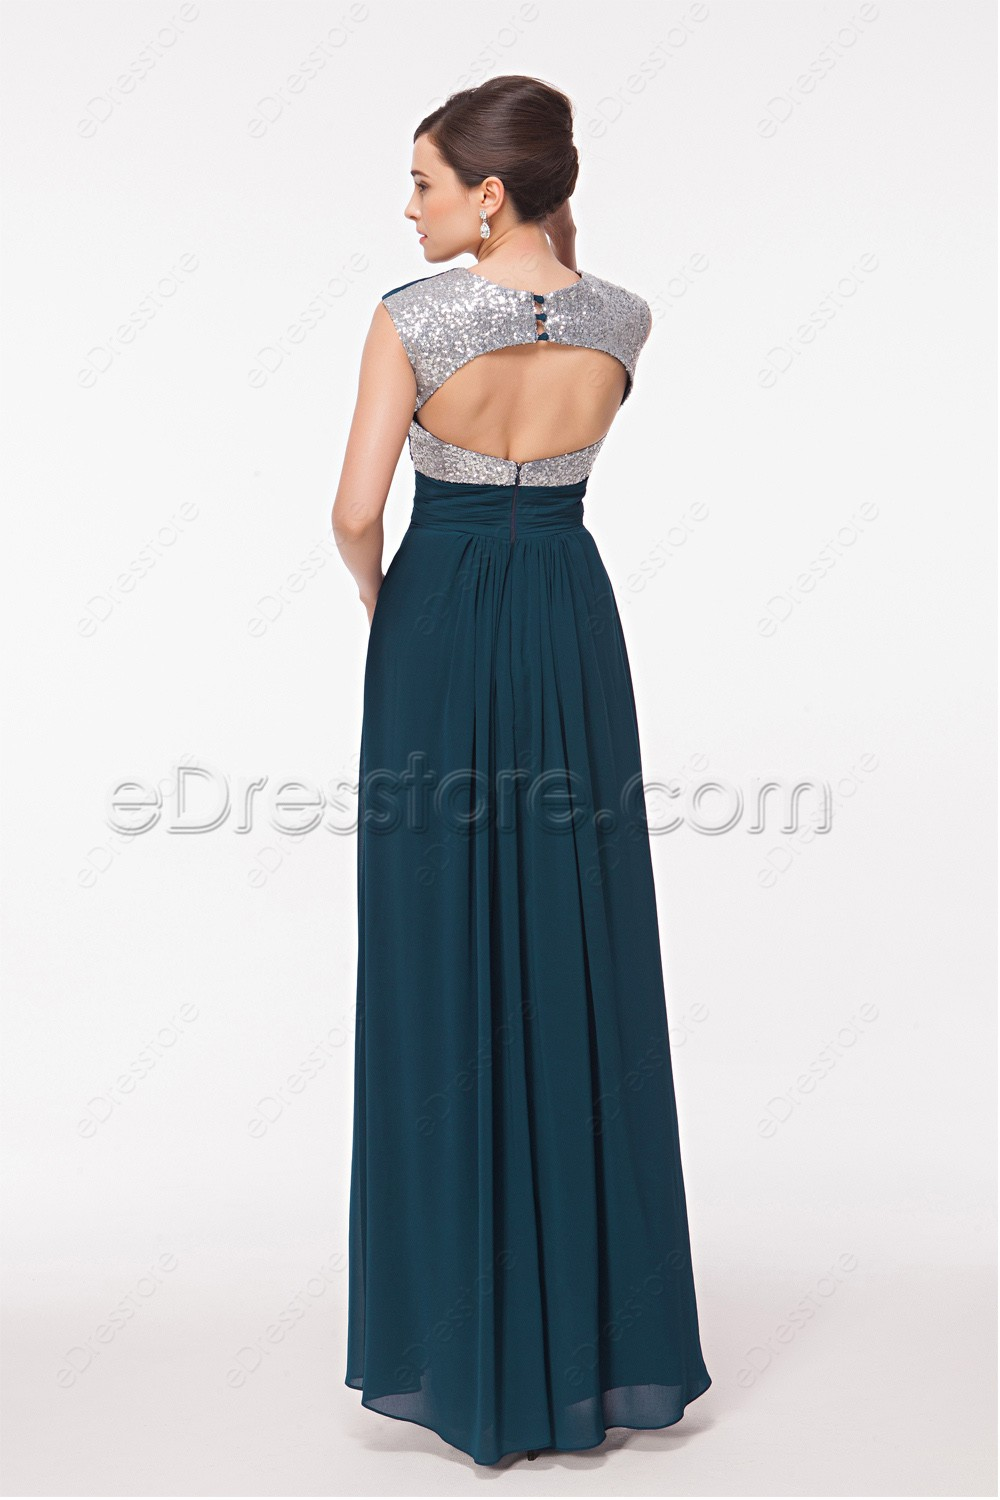 Sweetheart Backless Teal Bridesmaid Dresses Maid Of Honor